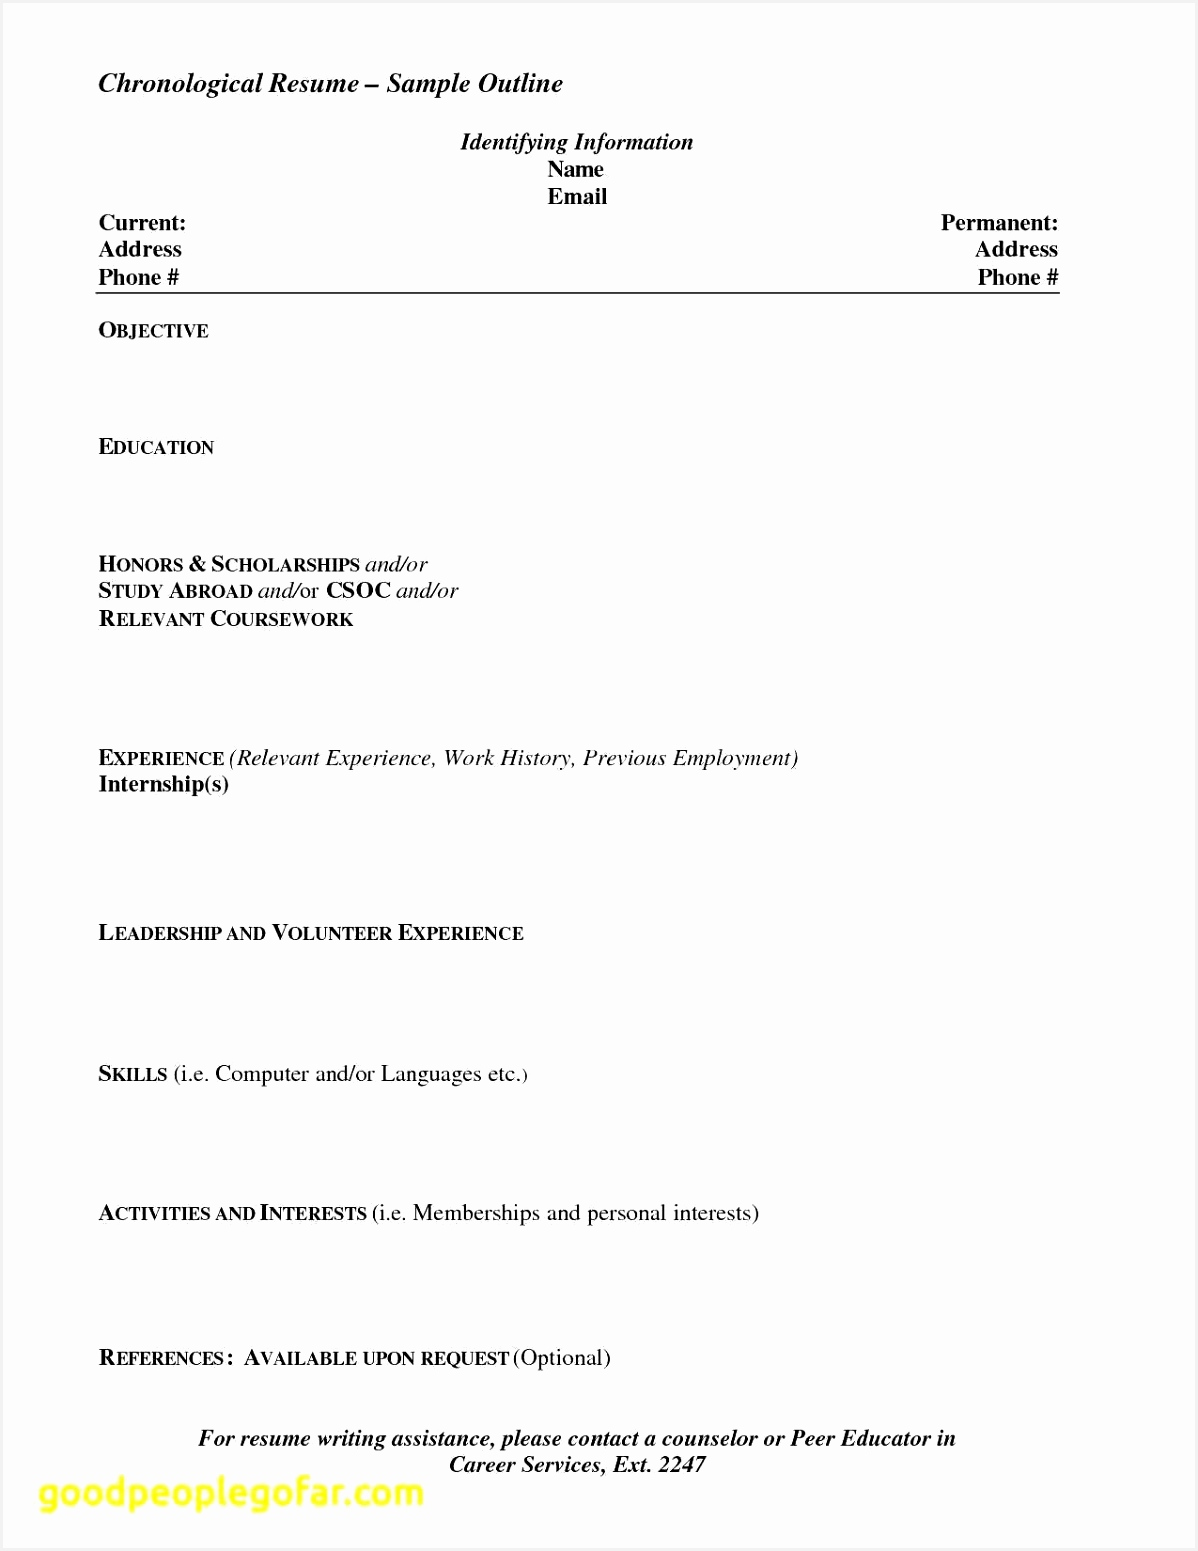 References On Resume Template Rmgda Awesome as References Resume – Salumguilher Of References On Resume Template Phyah Beautiful Rental Reference Letter Template or Example Professional Summary Bsw